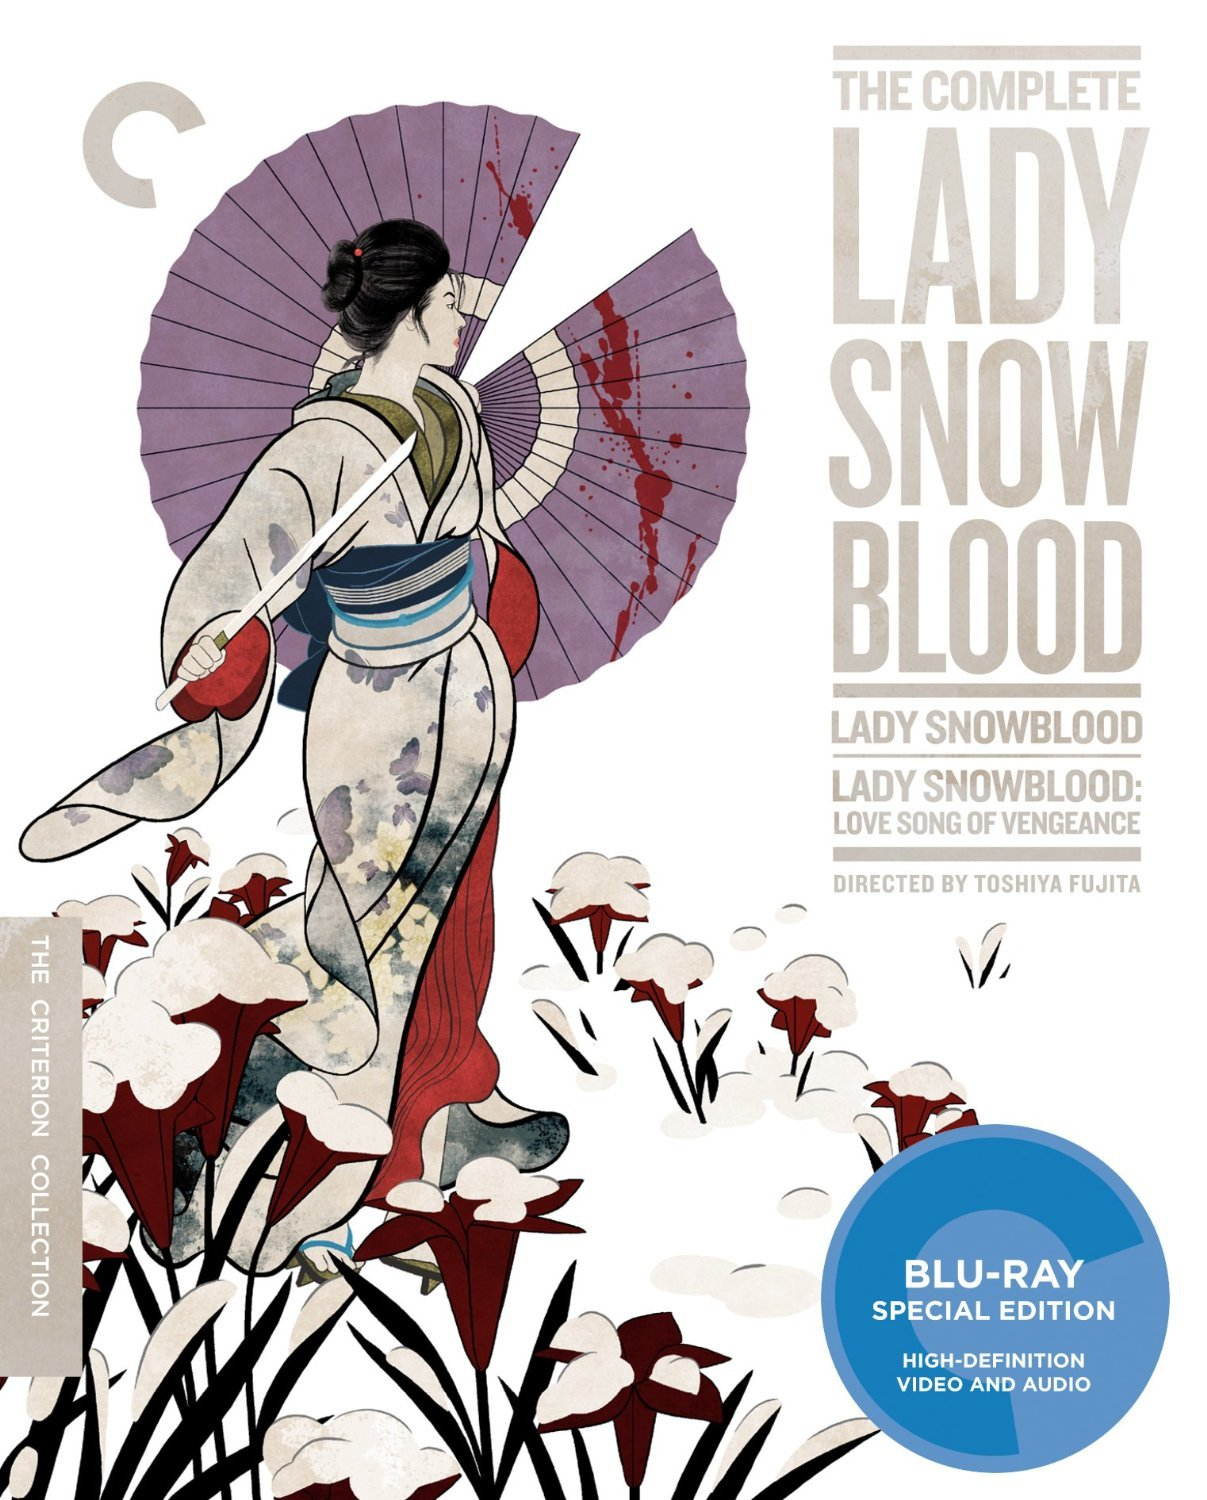 Lady Snowblood Criterion release